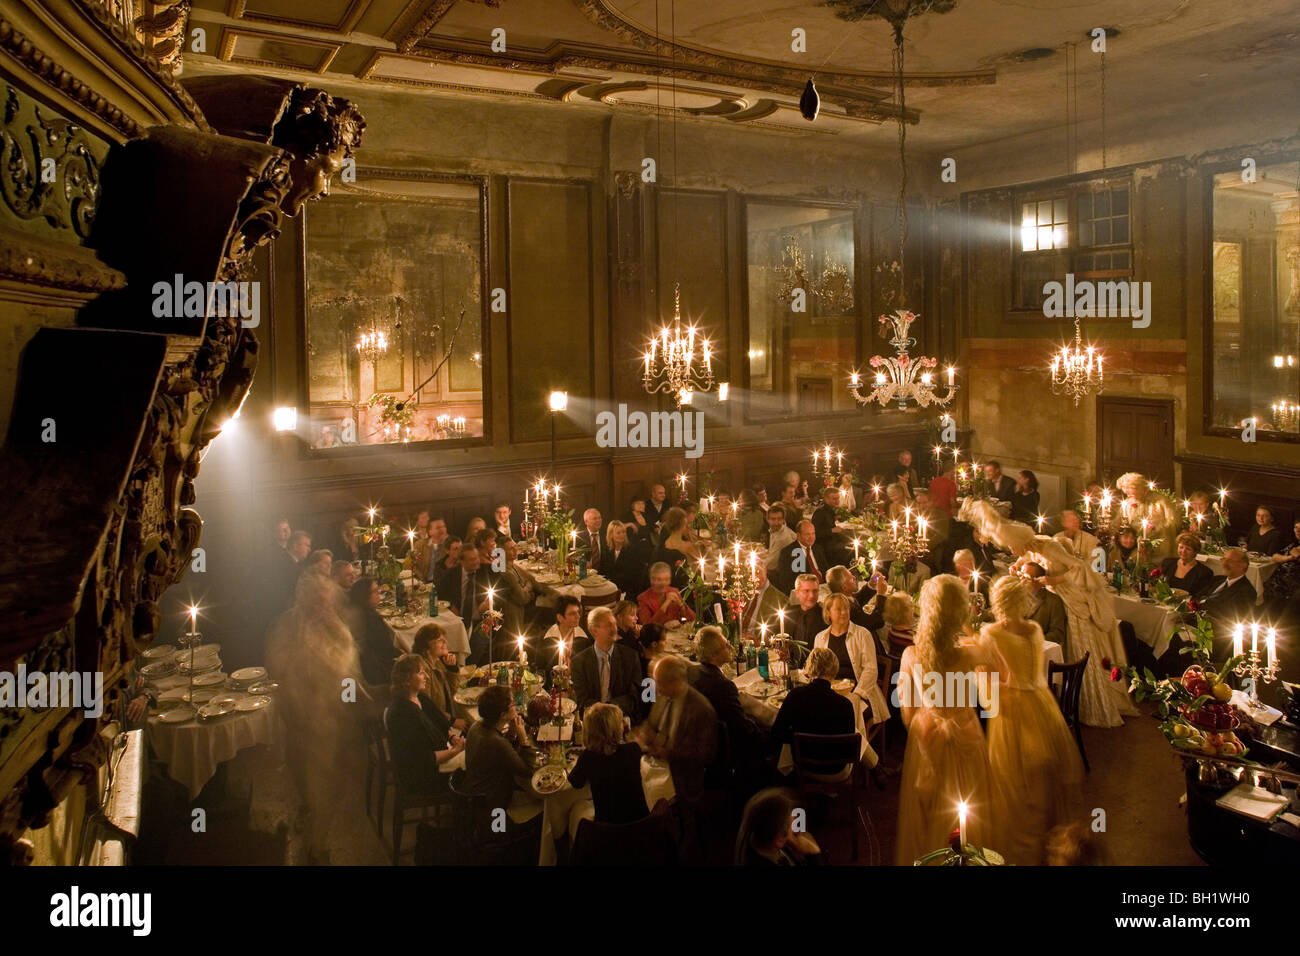 494c01242 Claerchens Ballhaus, Berlin Mitte, private candlelight party with opera  singers in costume, Berlin, Germany